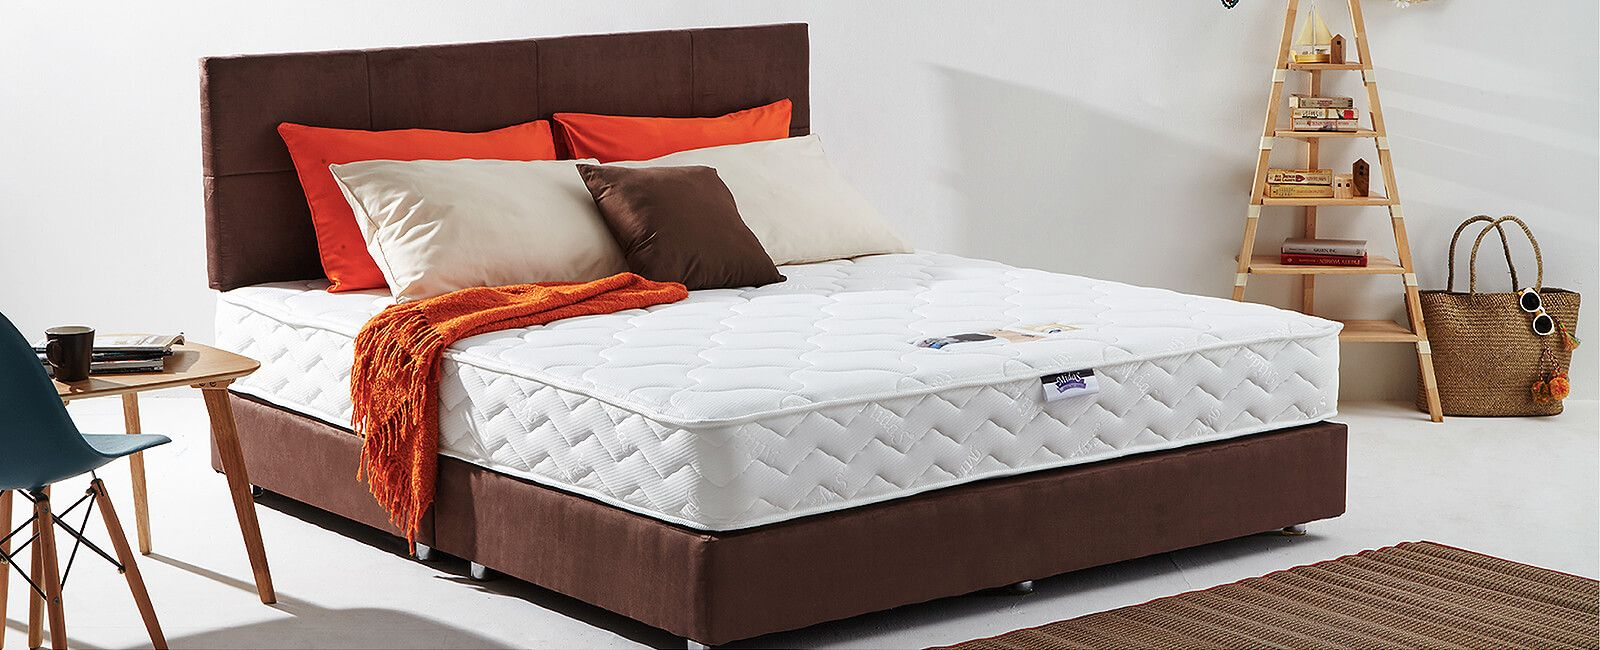 city bedroom mosaic collections value mattresses brown furniture collection product dark mattress and the